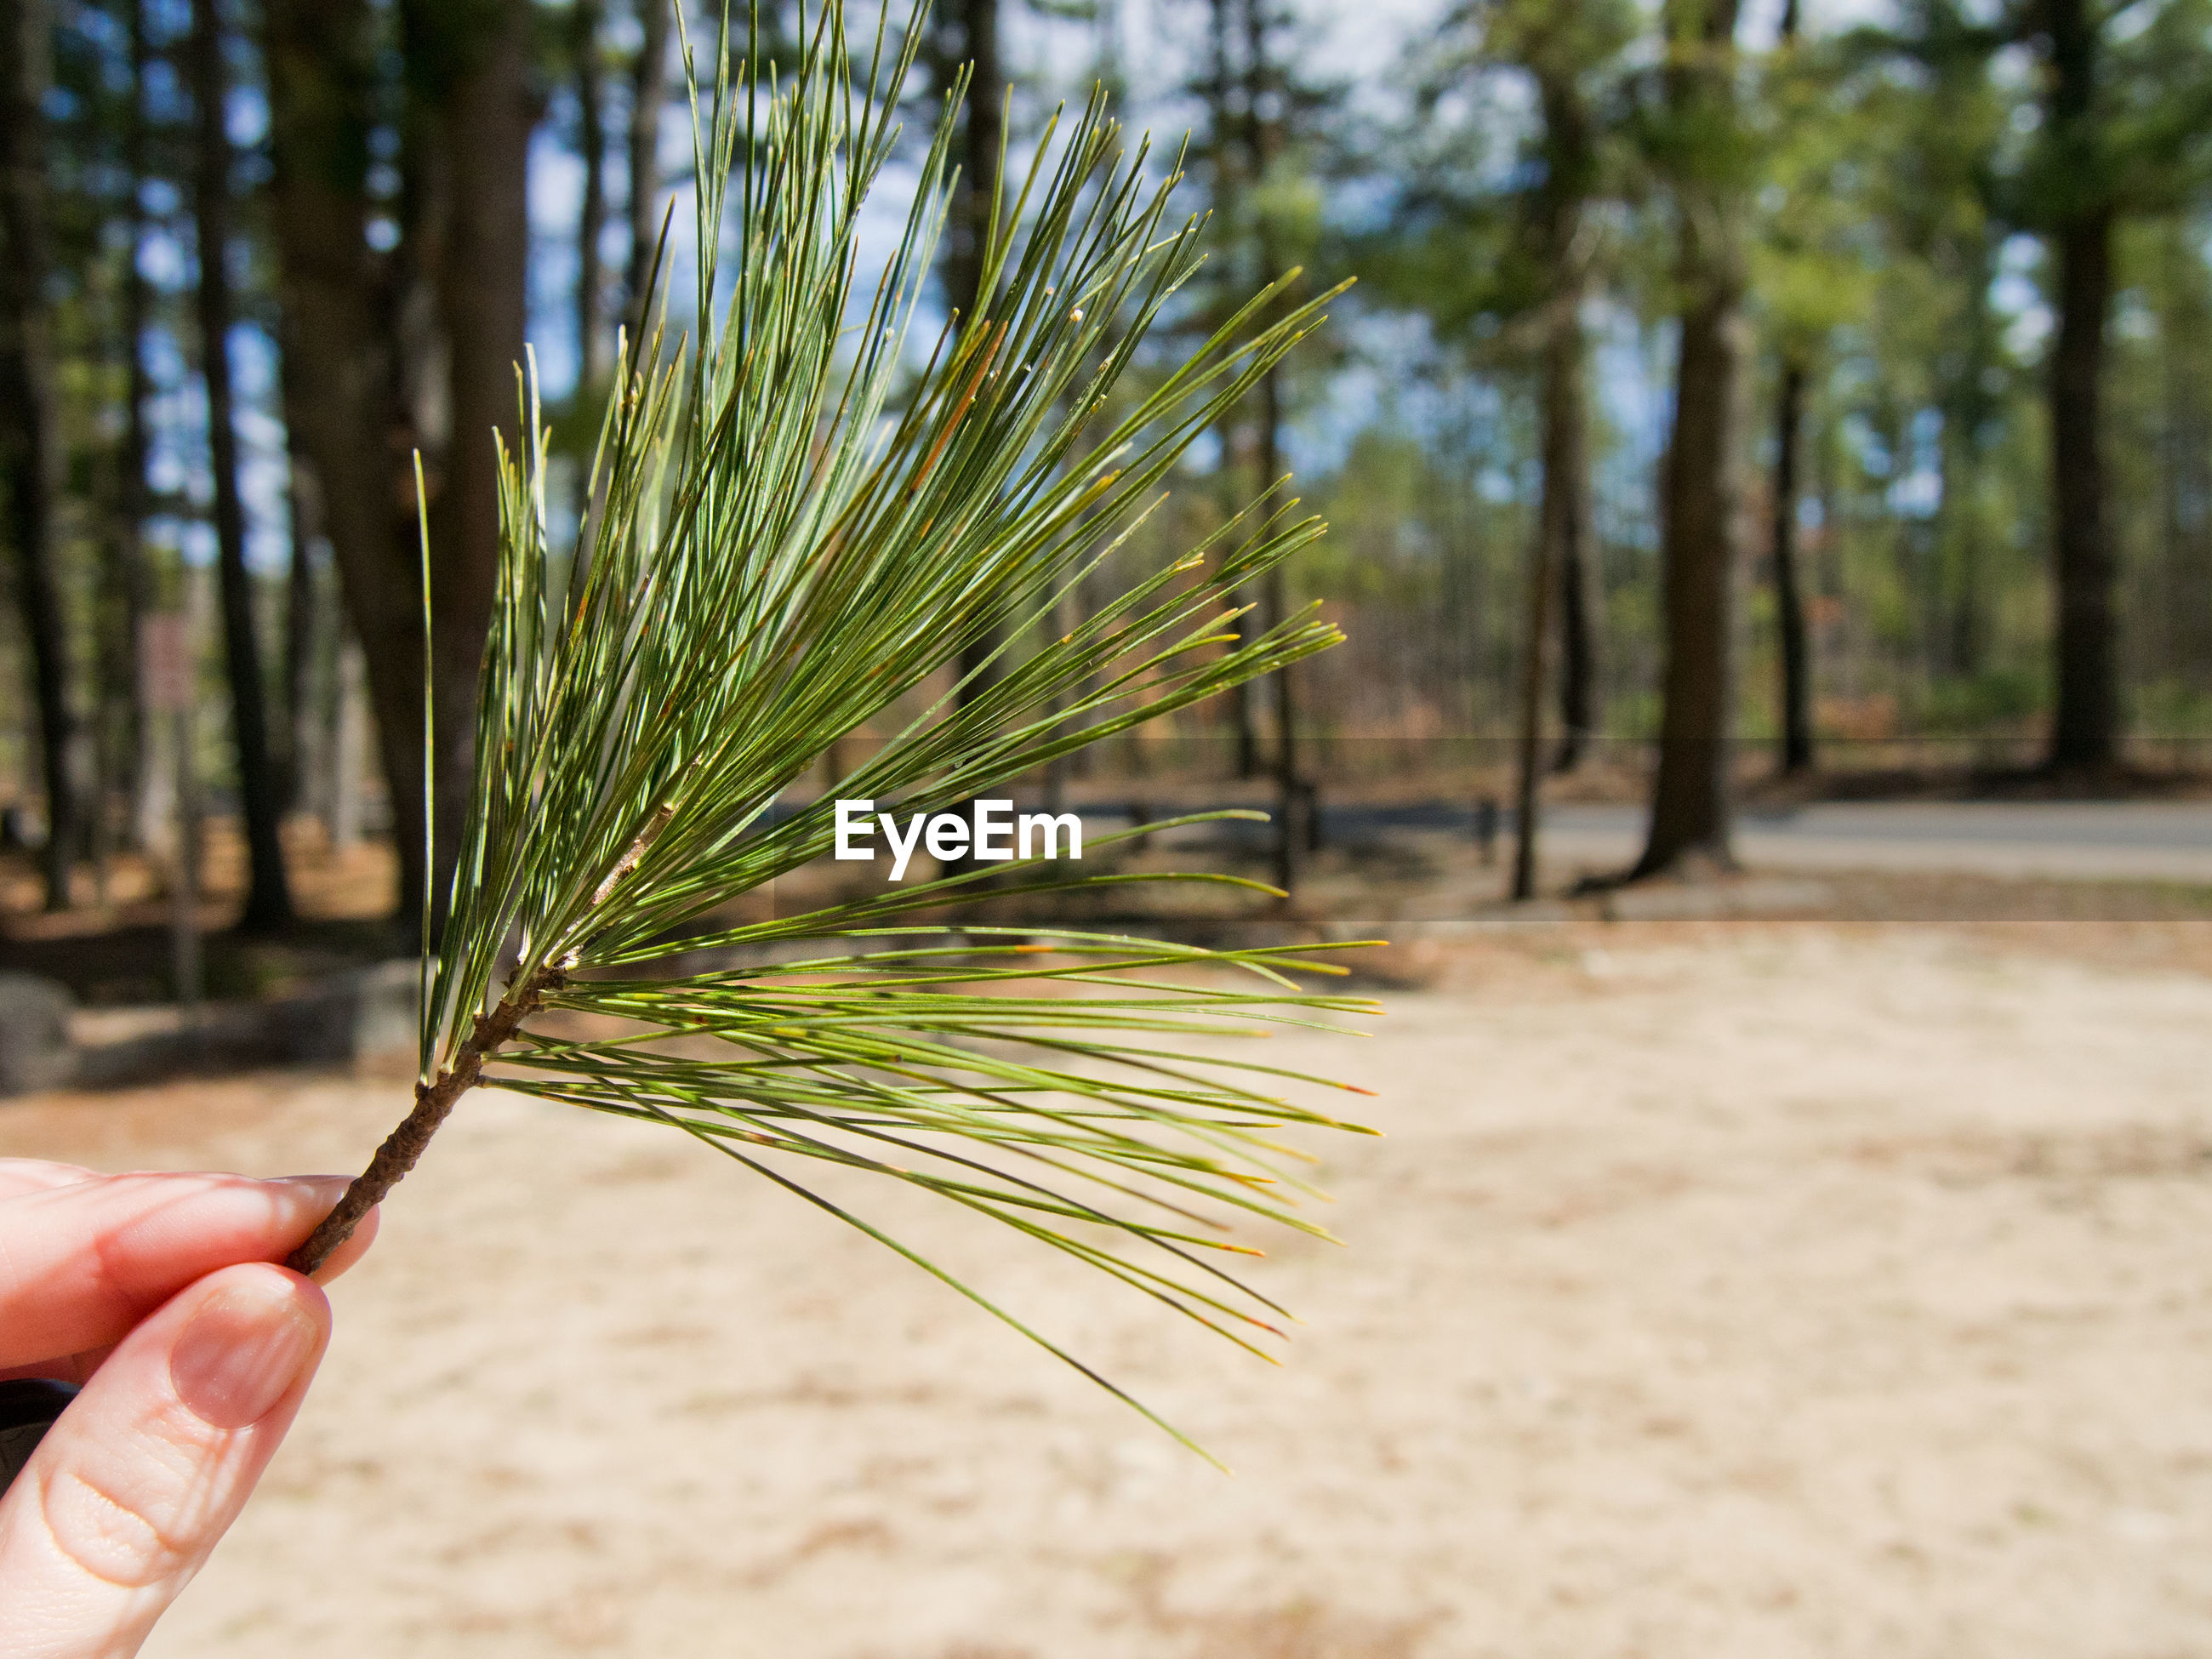 Close-up of hand holding pine needle in forest